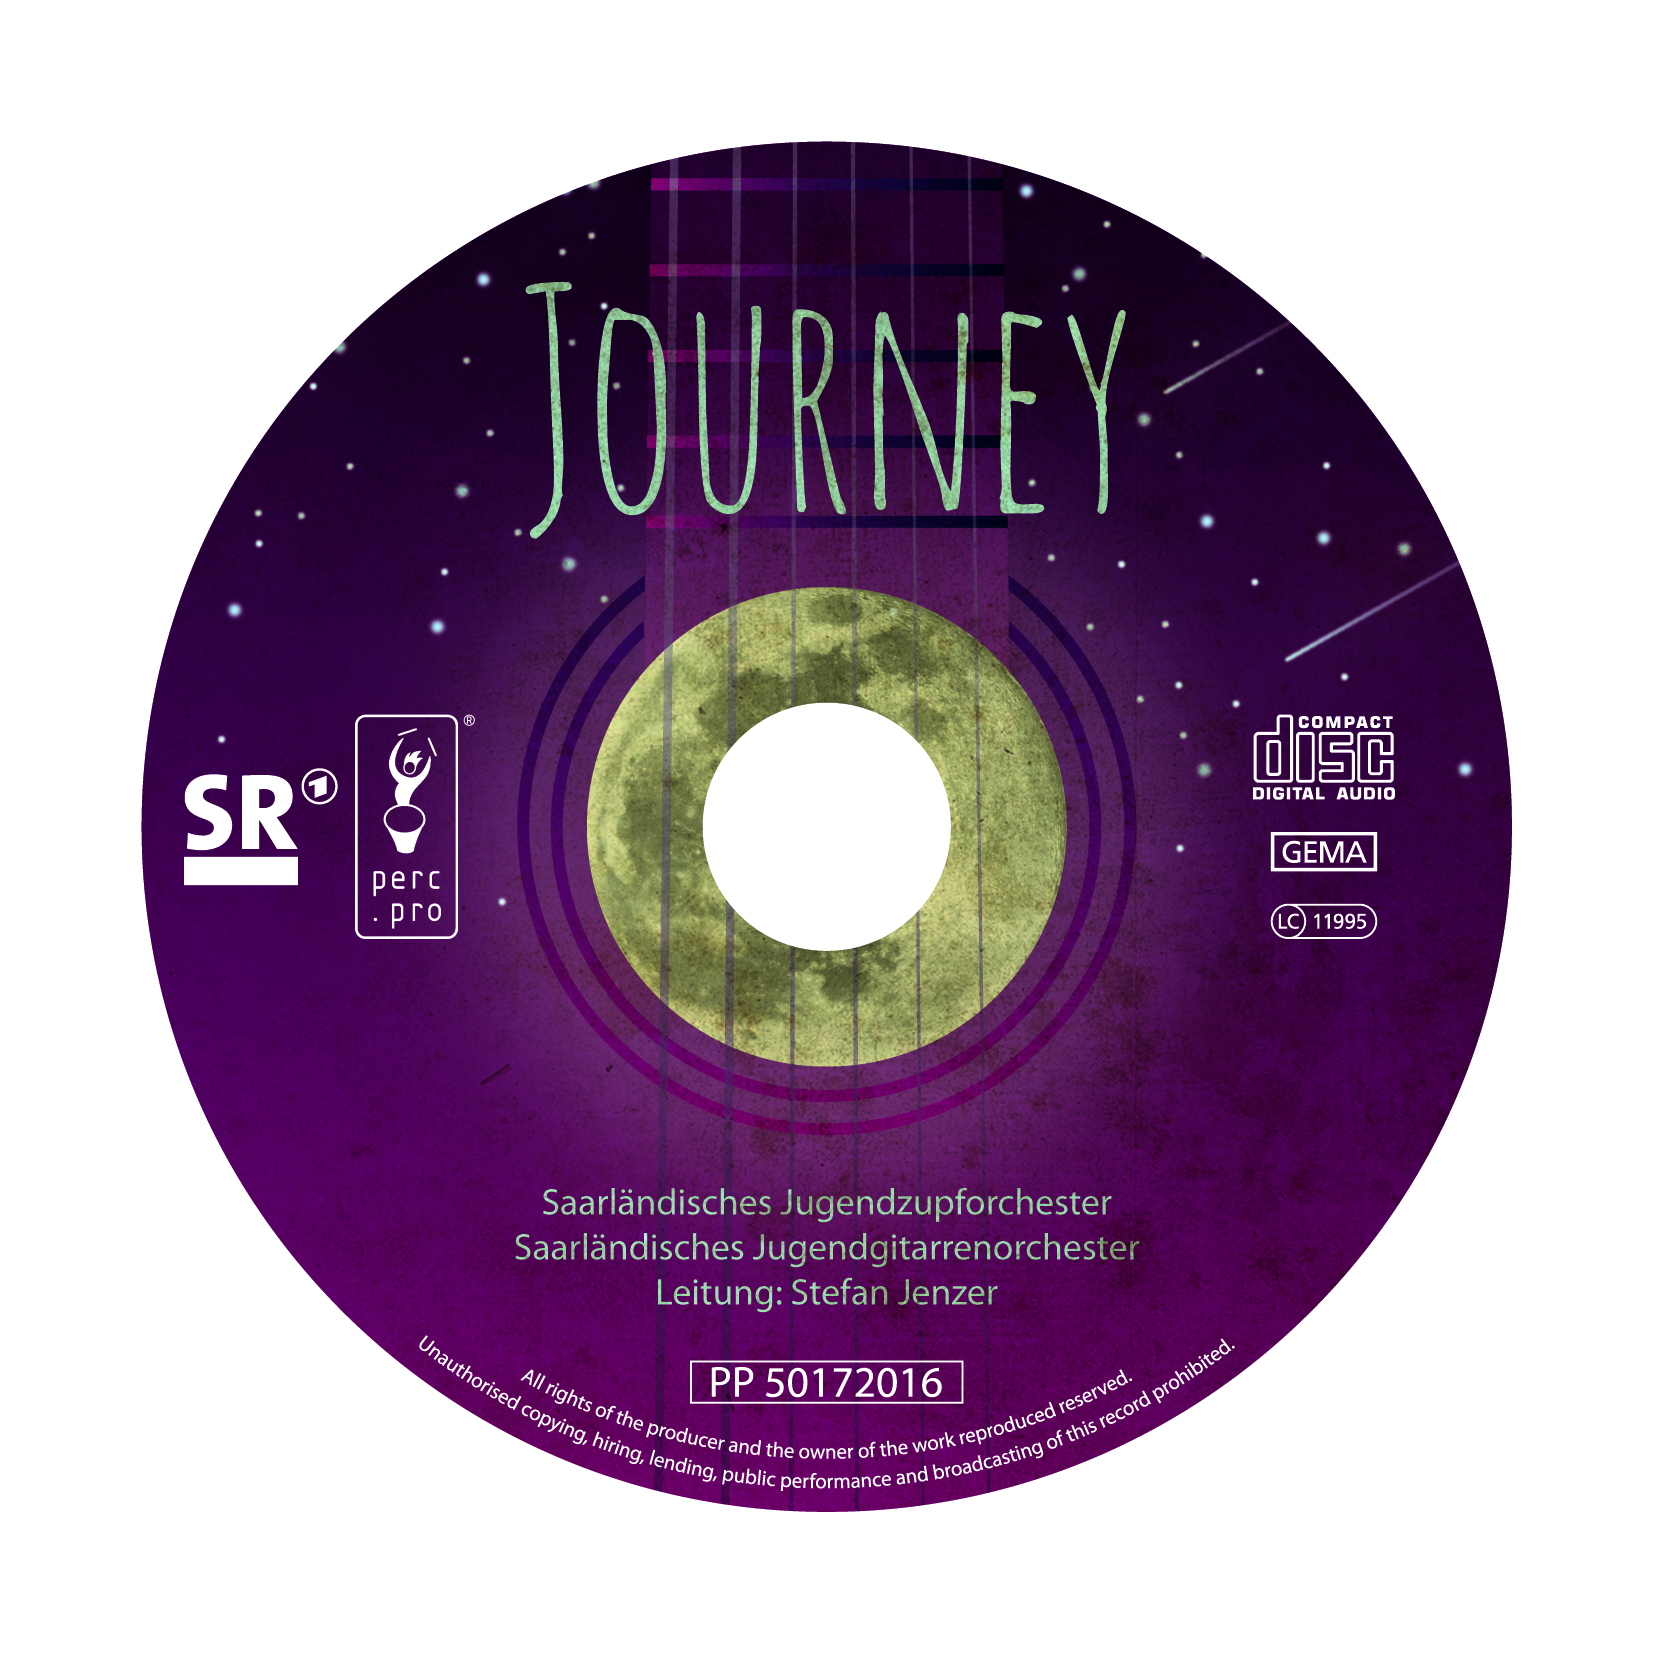 SJZO_CD_Label_010516-1